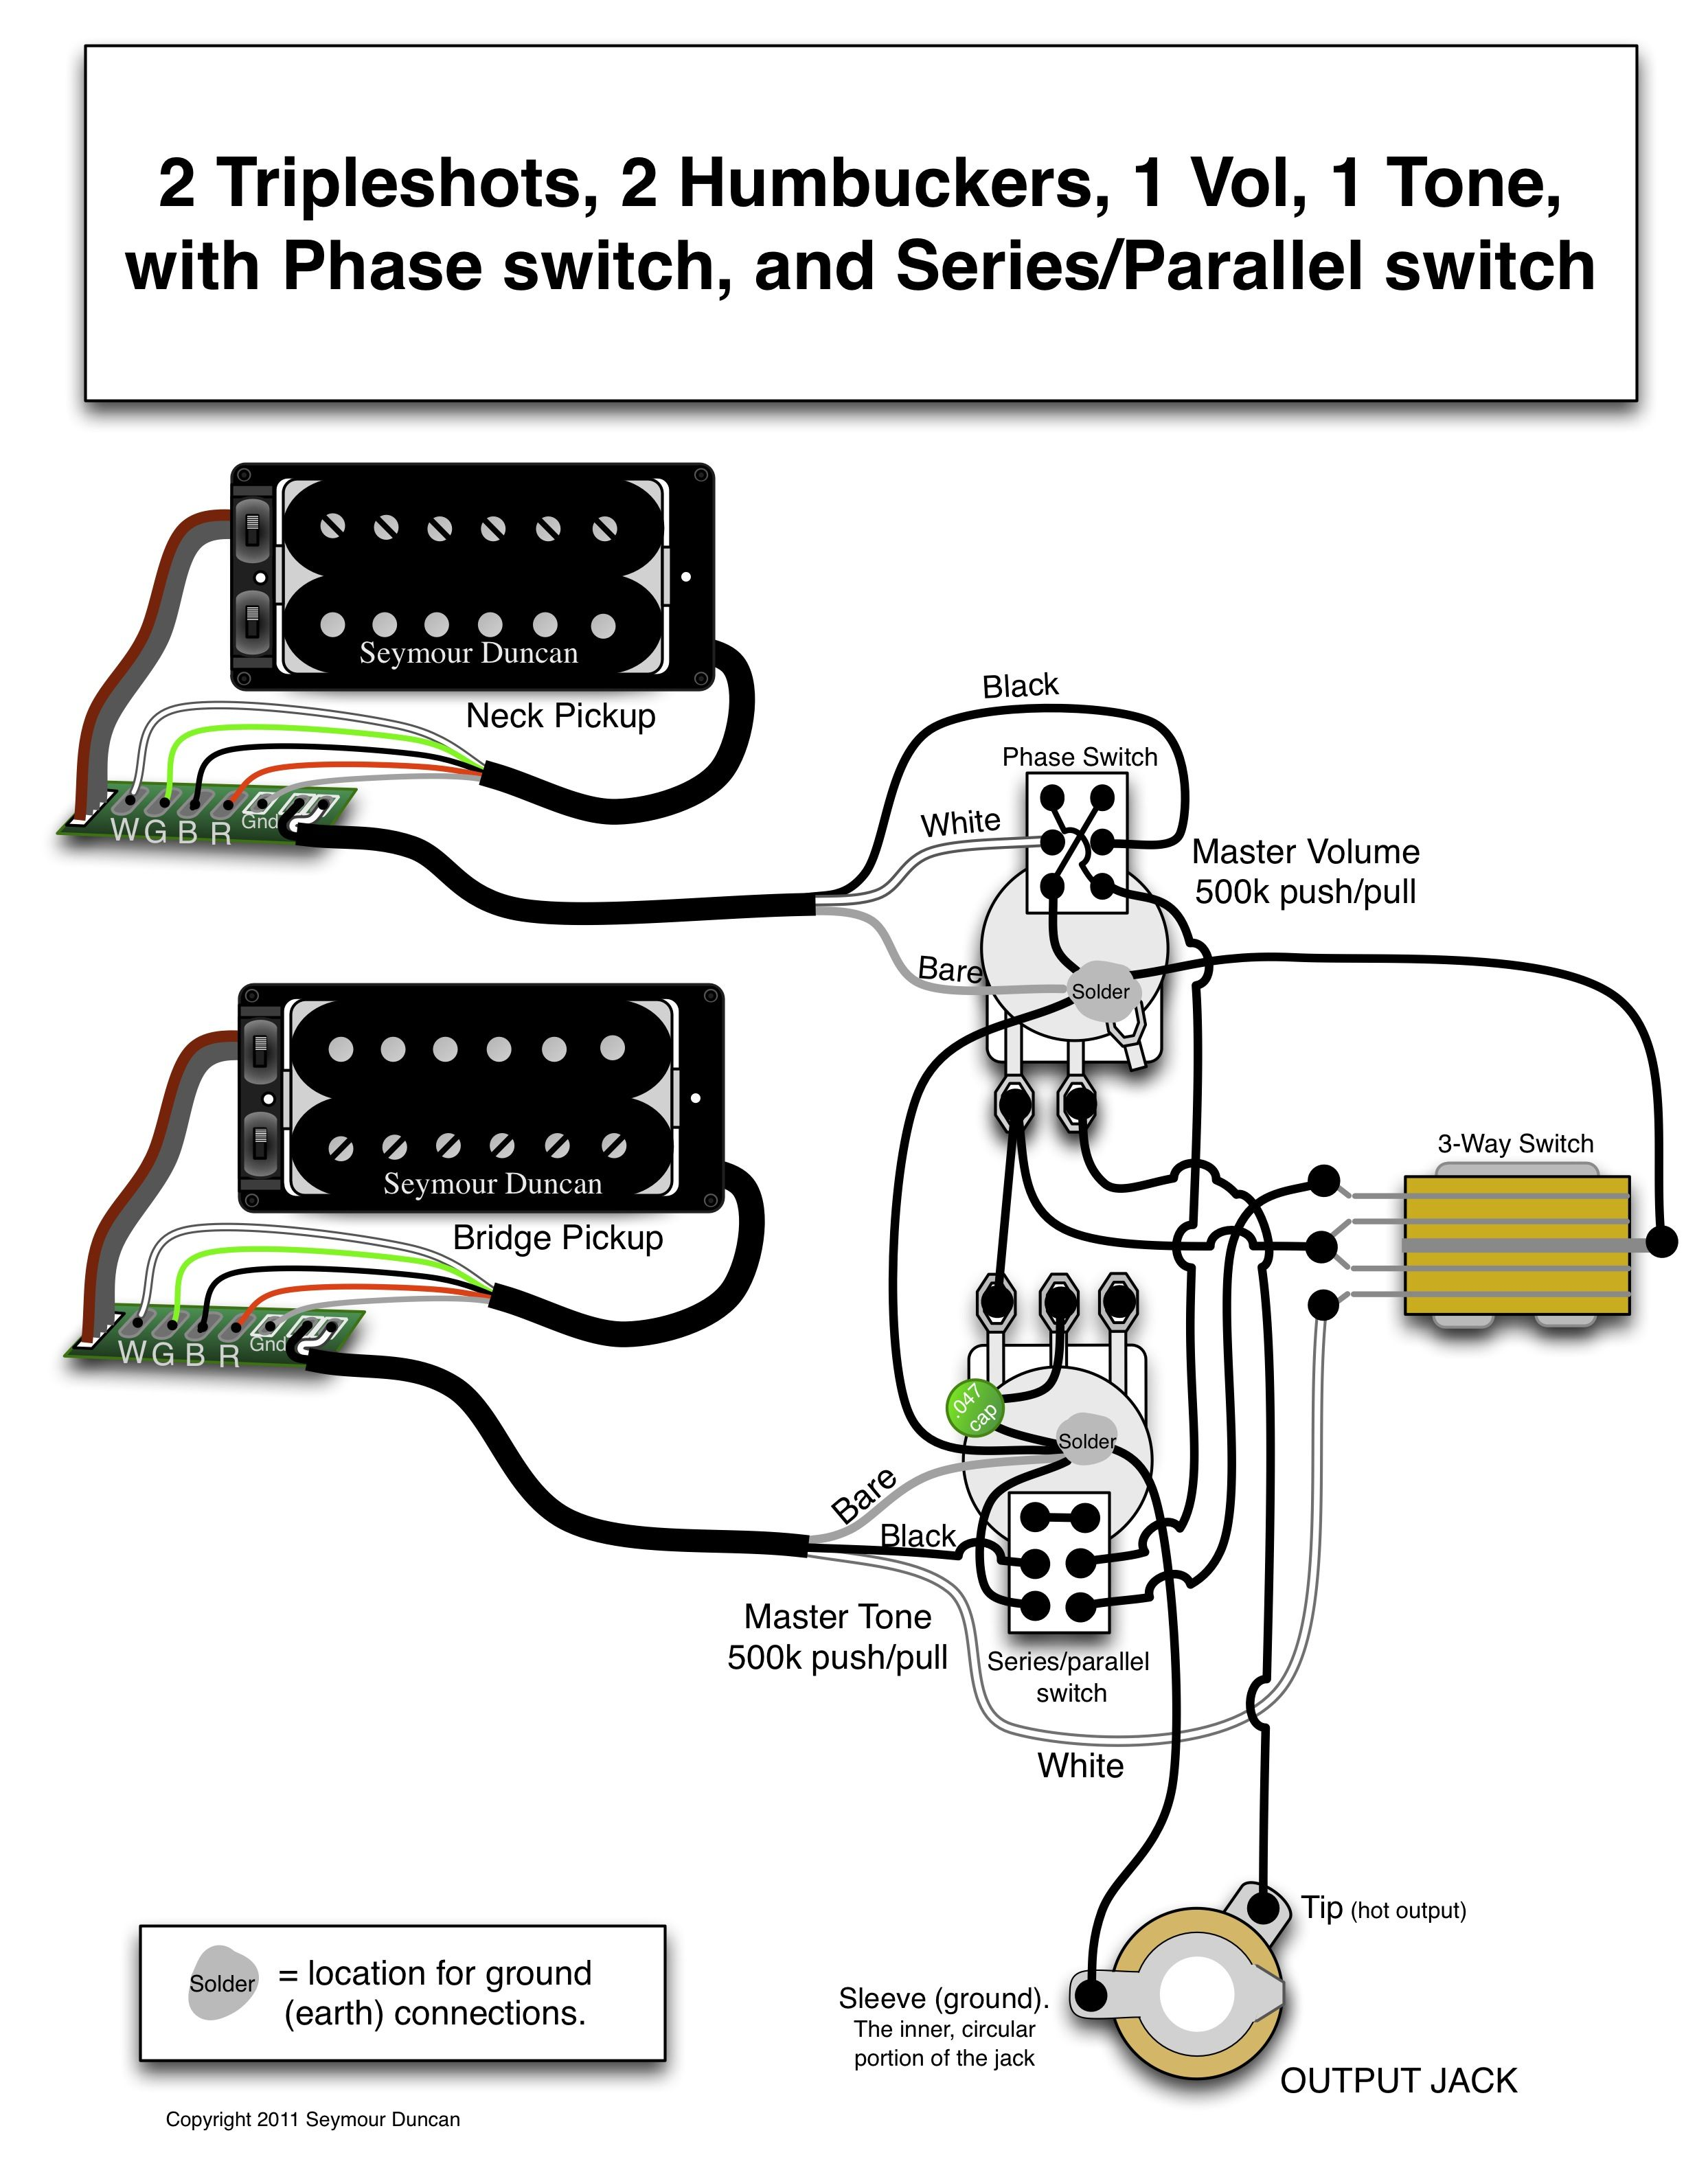 seymour duncan wiring diagram 2 triple shots 2 humbuckers 1 vol rh pinterest co uk seymour duncan two humbucker wiring diagram seymour duncan humbucker wiring color code